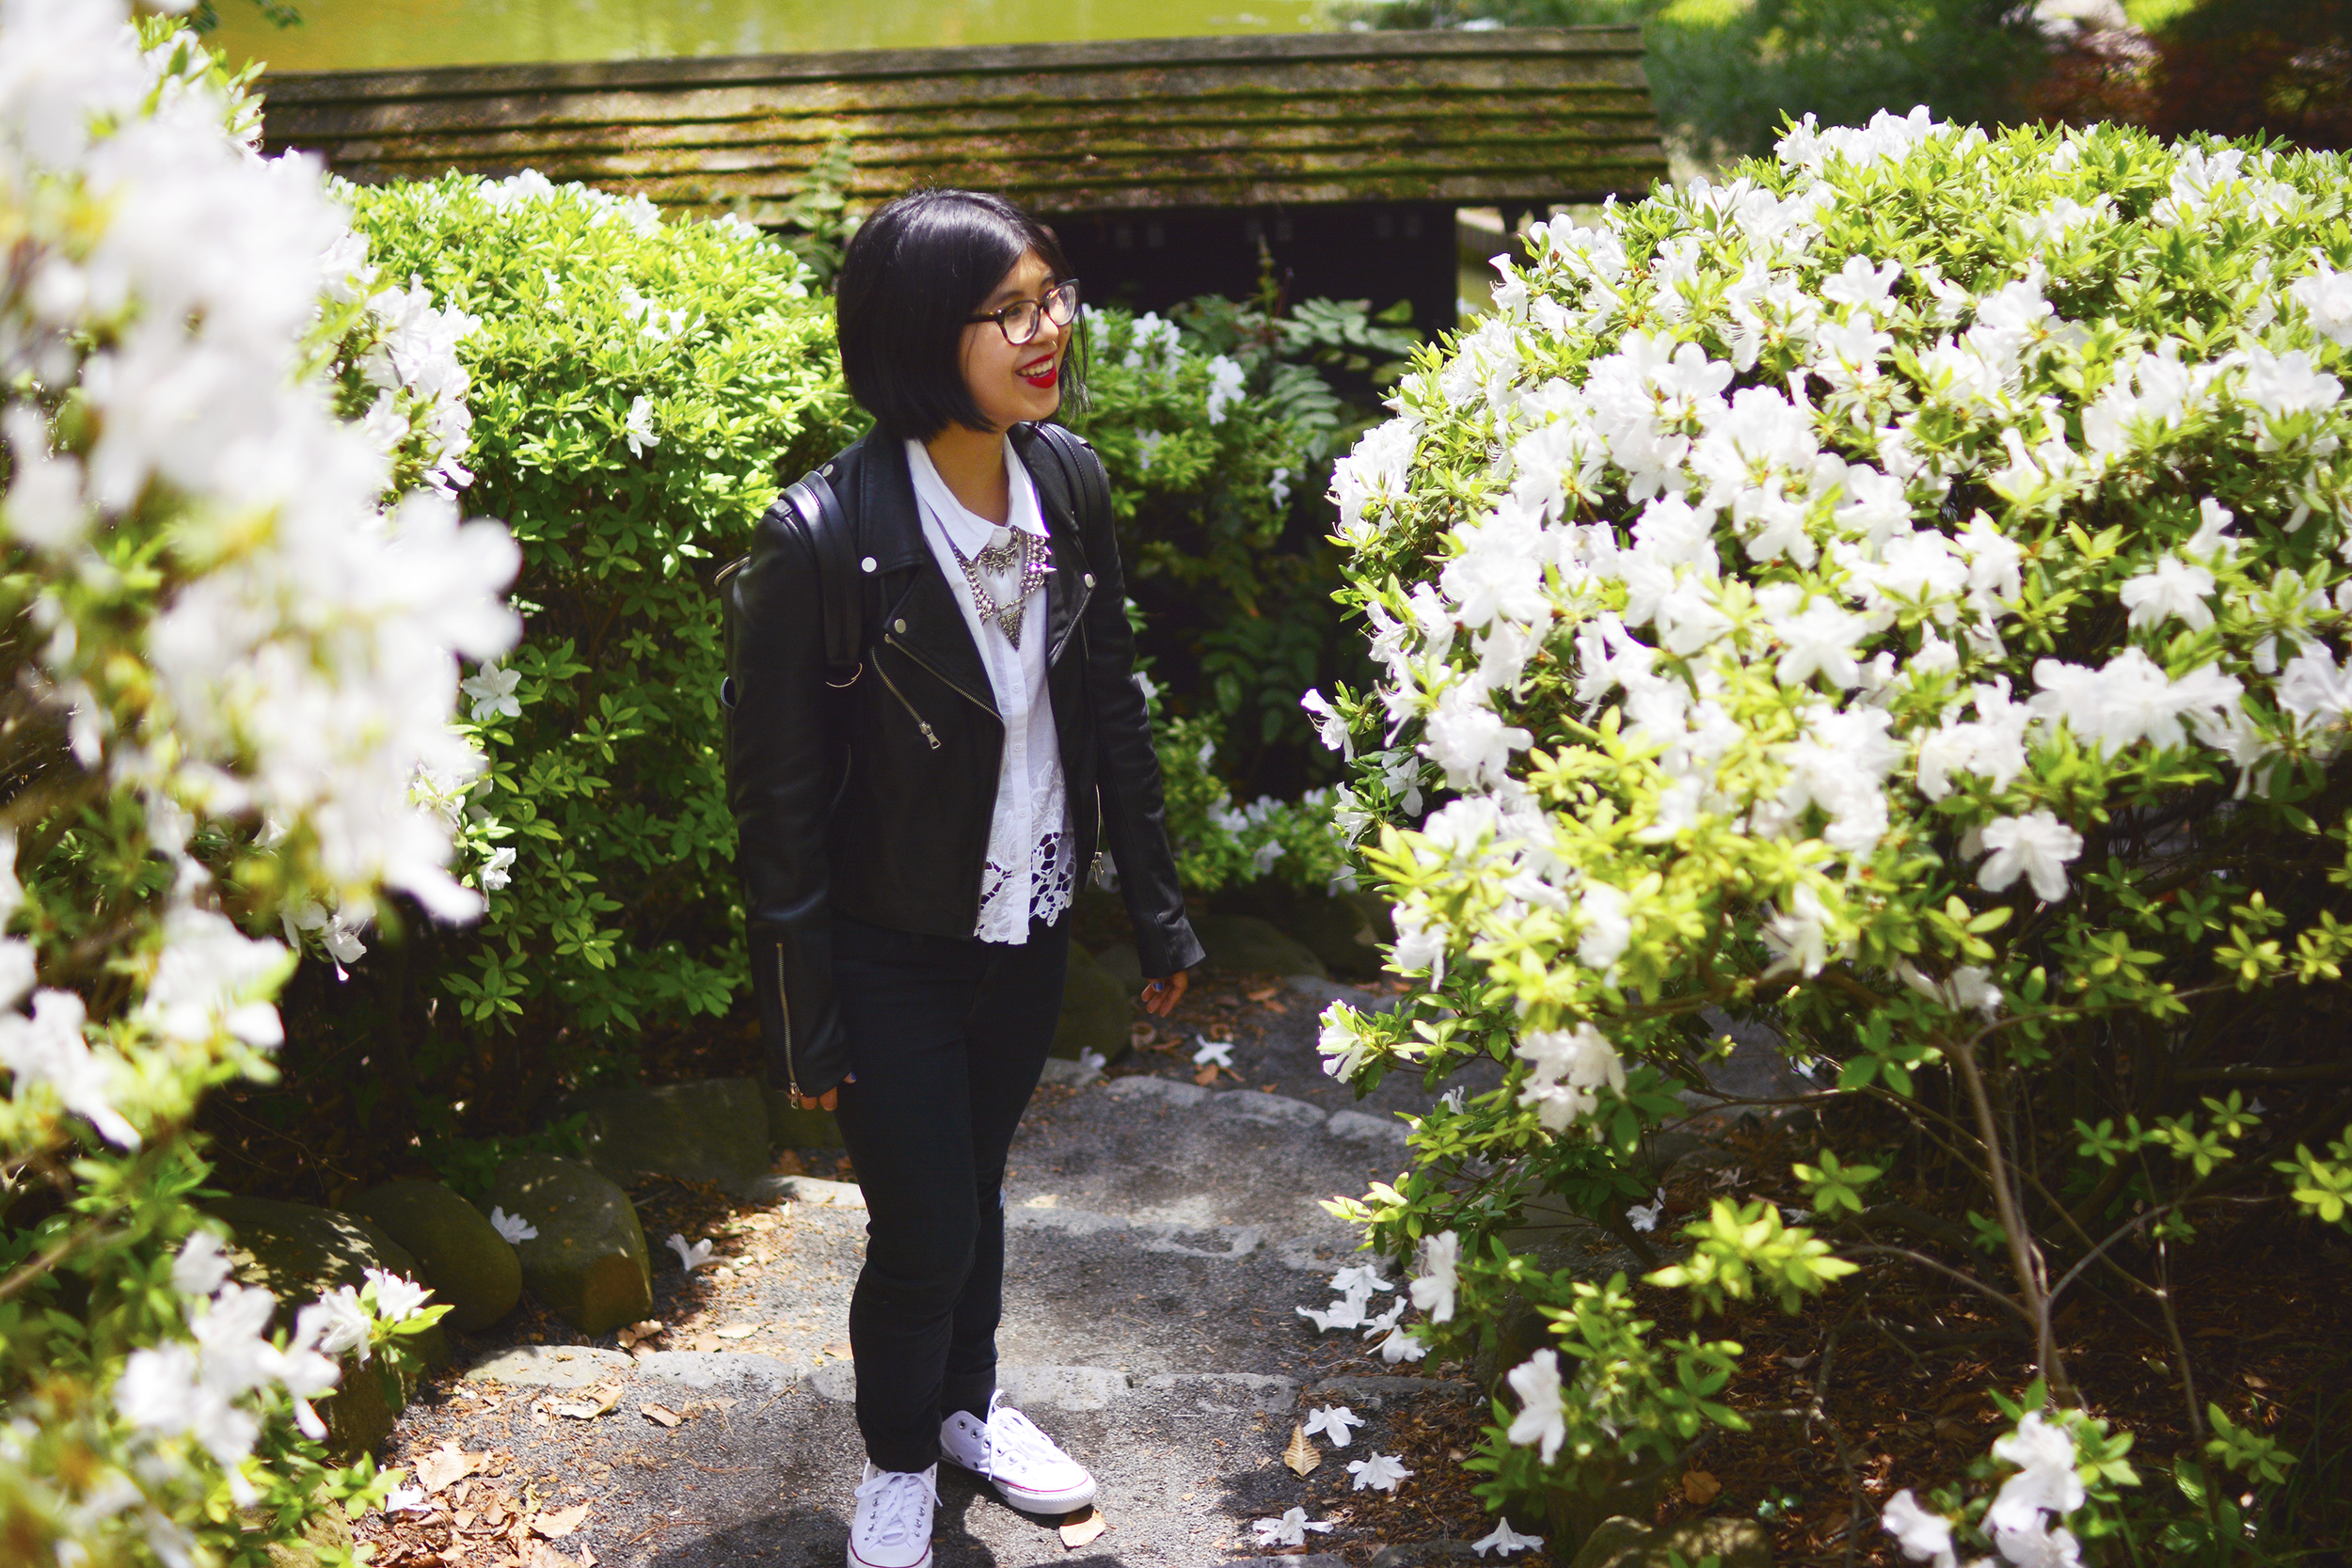 Edgy & classy outfit with floral cut shirt, leather jacket, Claire Marshall's statement necklace, and white Converses for trip to Brooklyn Botanical Gardens